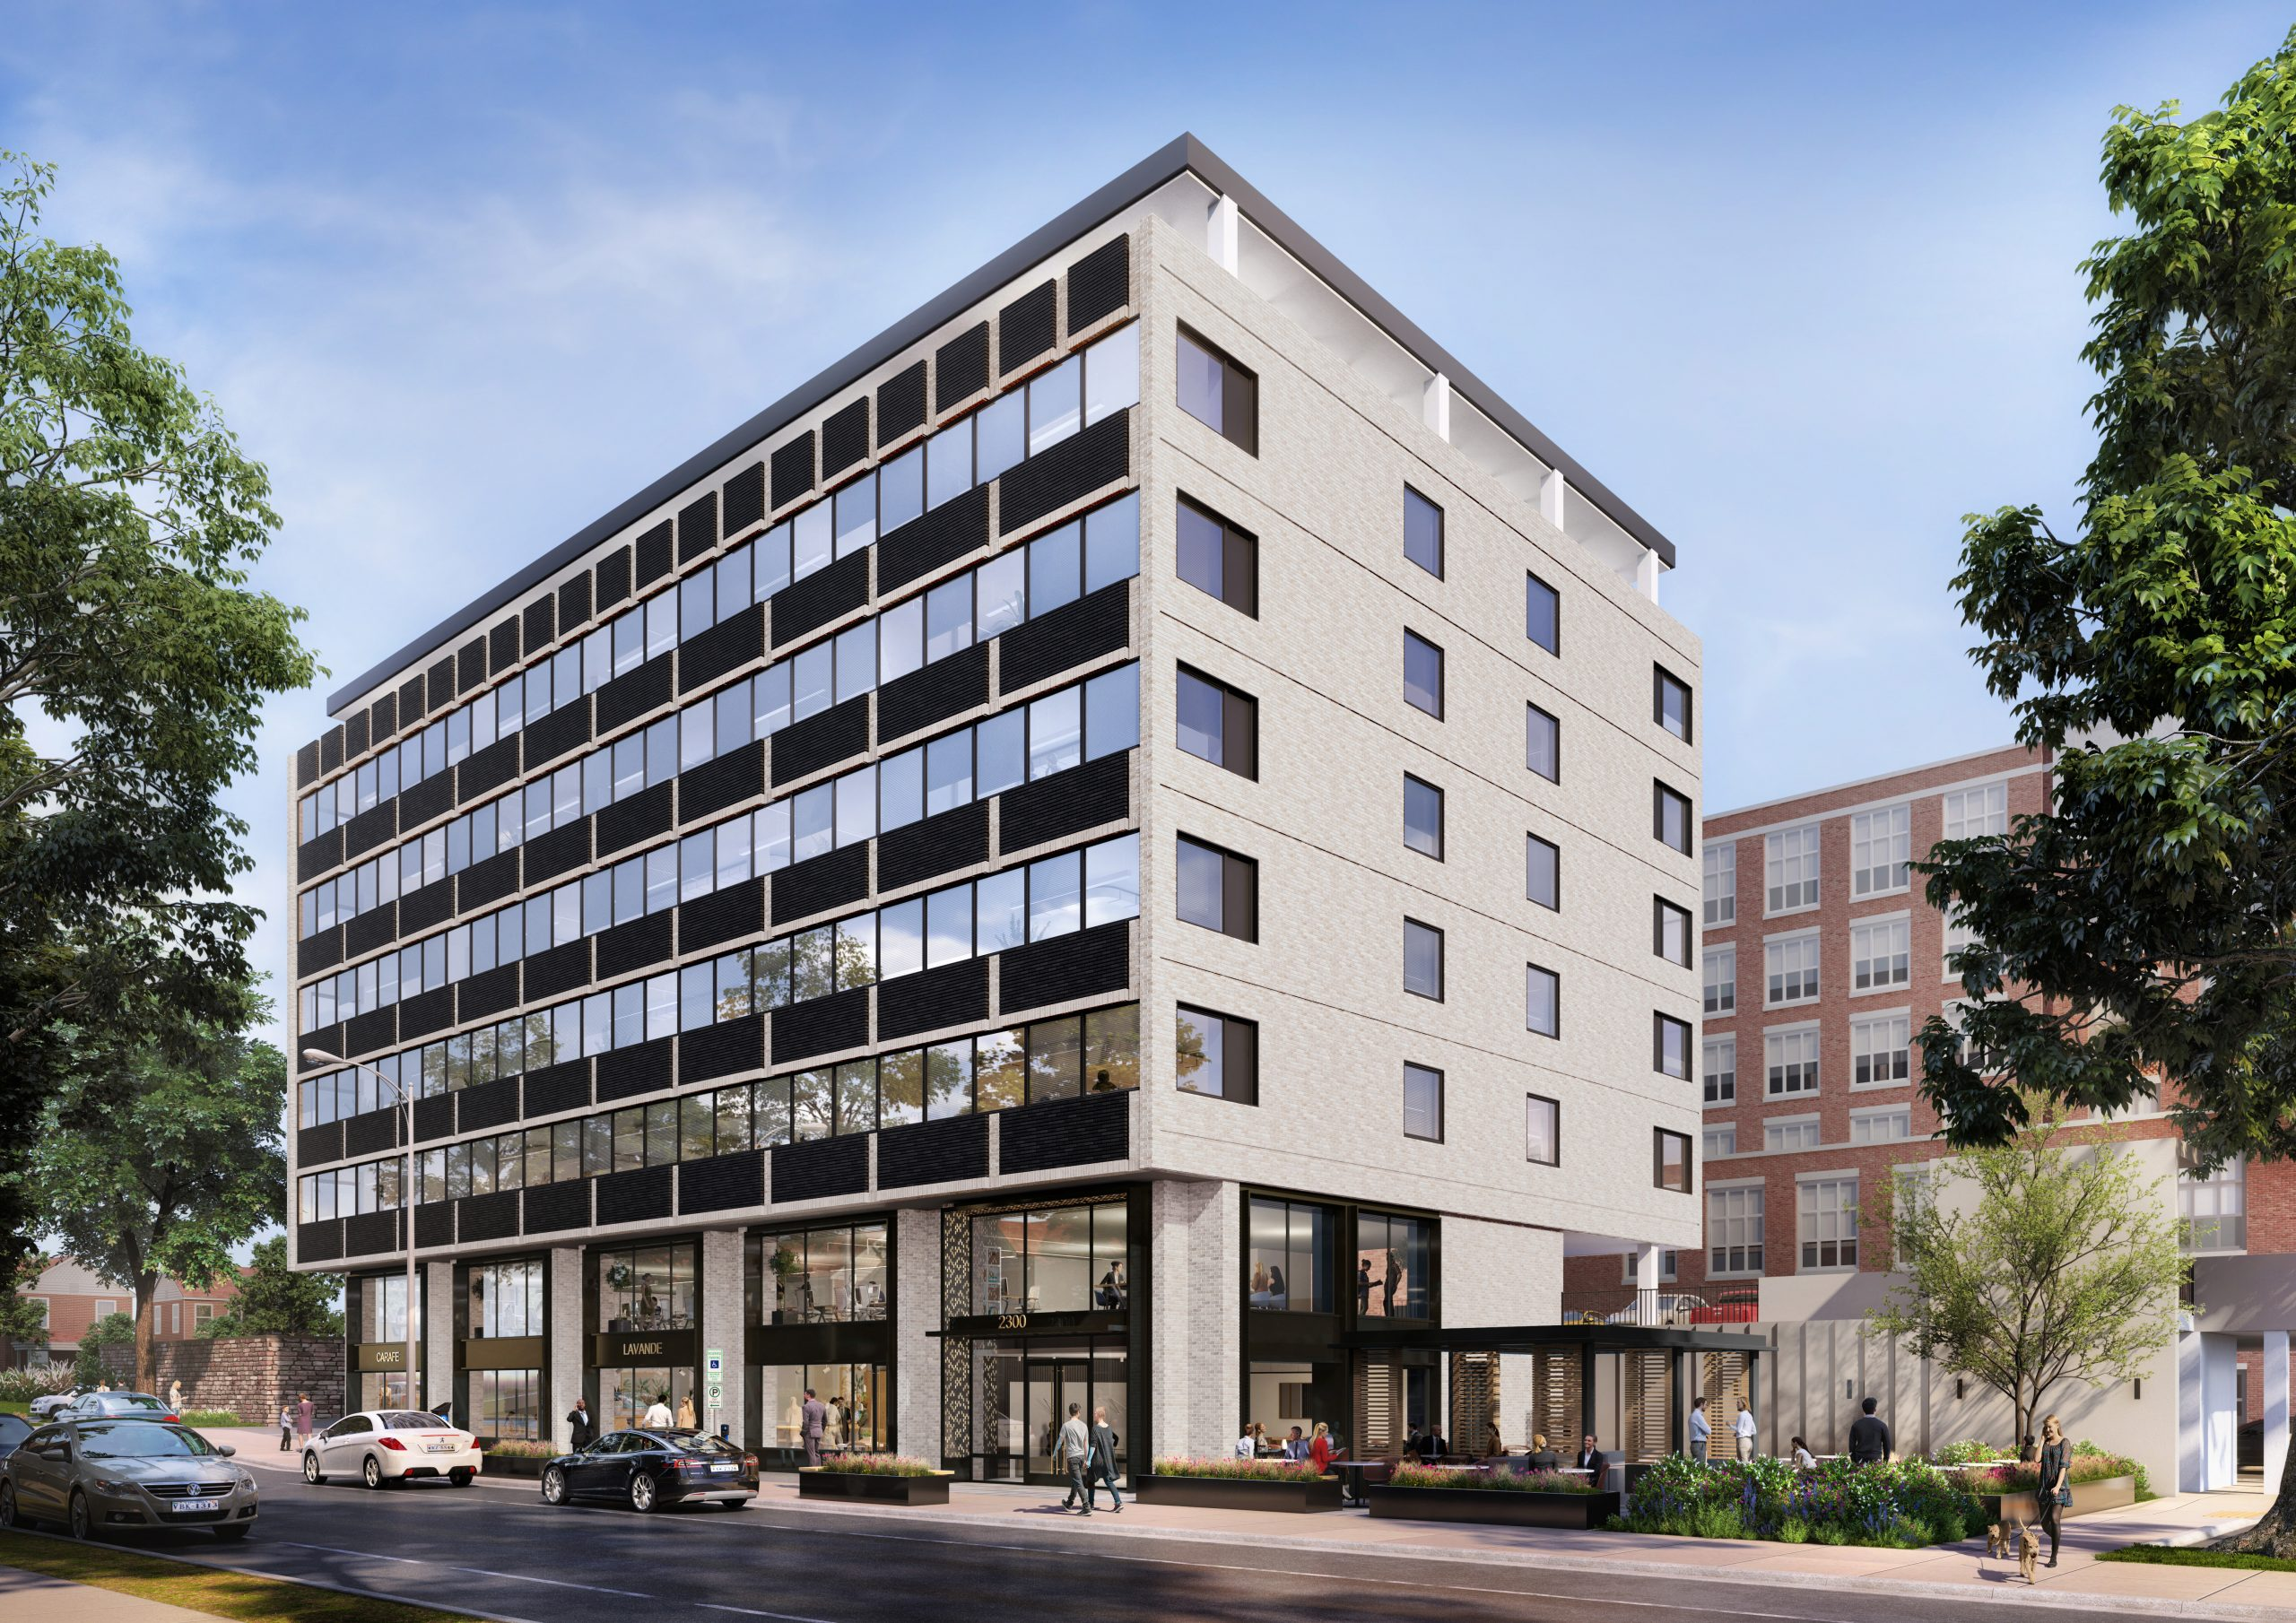 2300 9th St - RENDERING 01 - Final